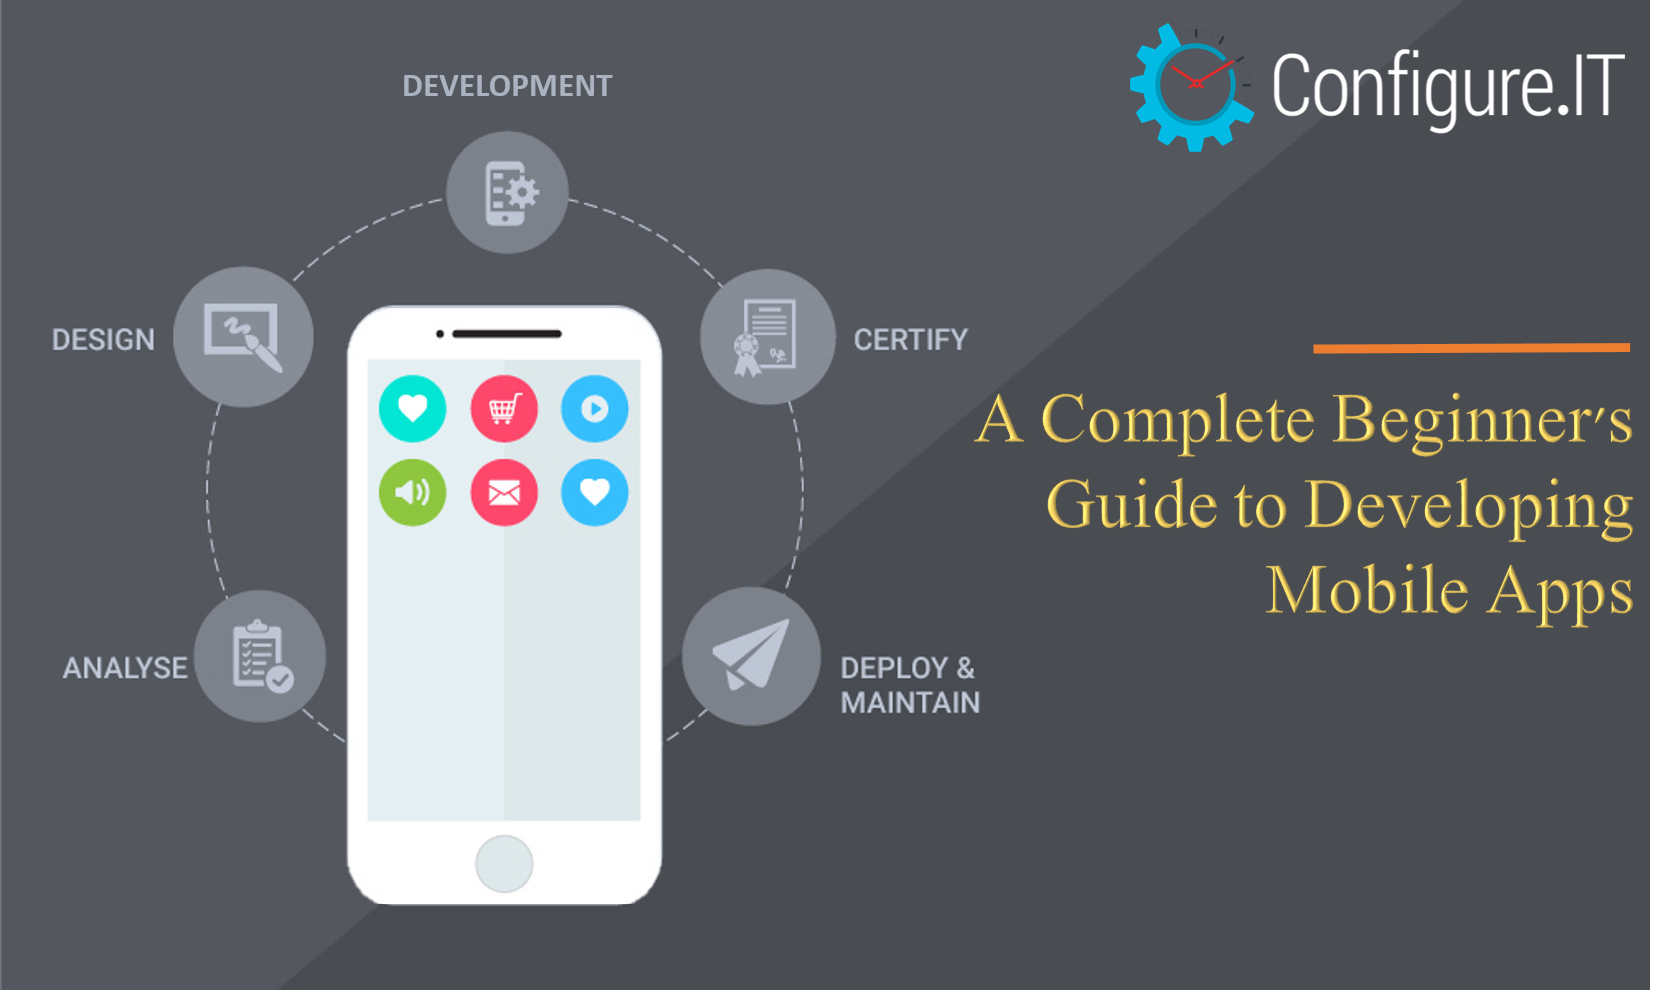 The Beginner's Guide to Mobile Phone App Development